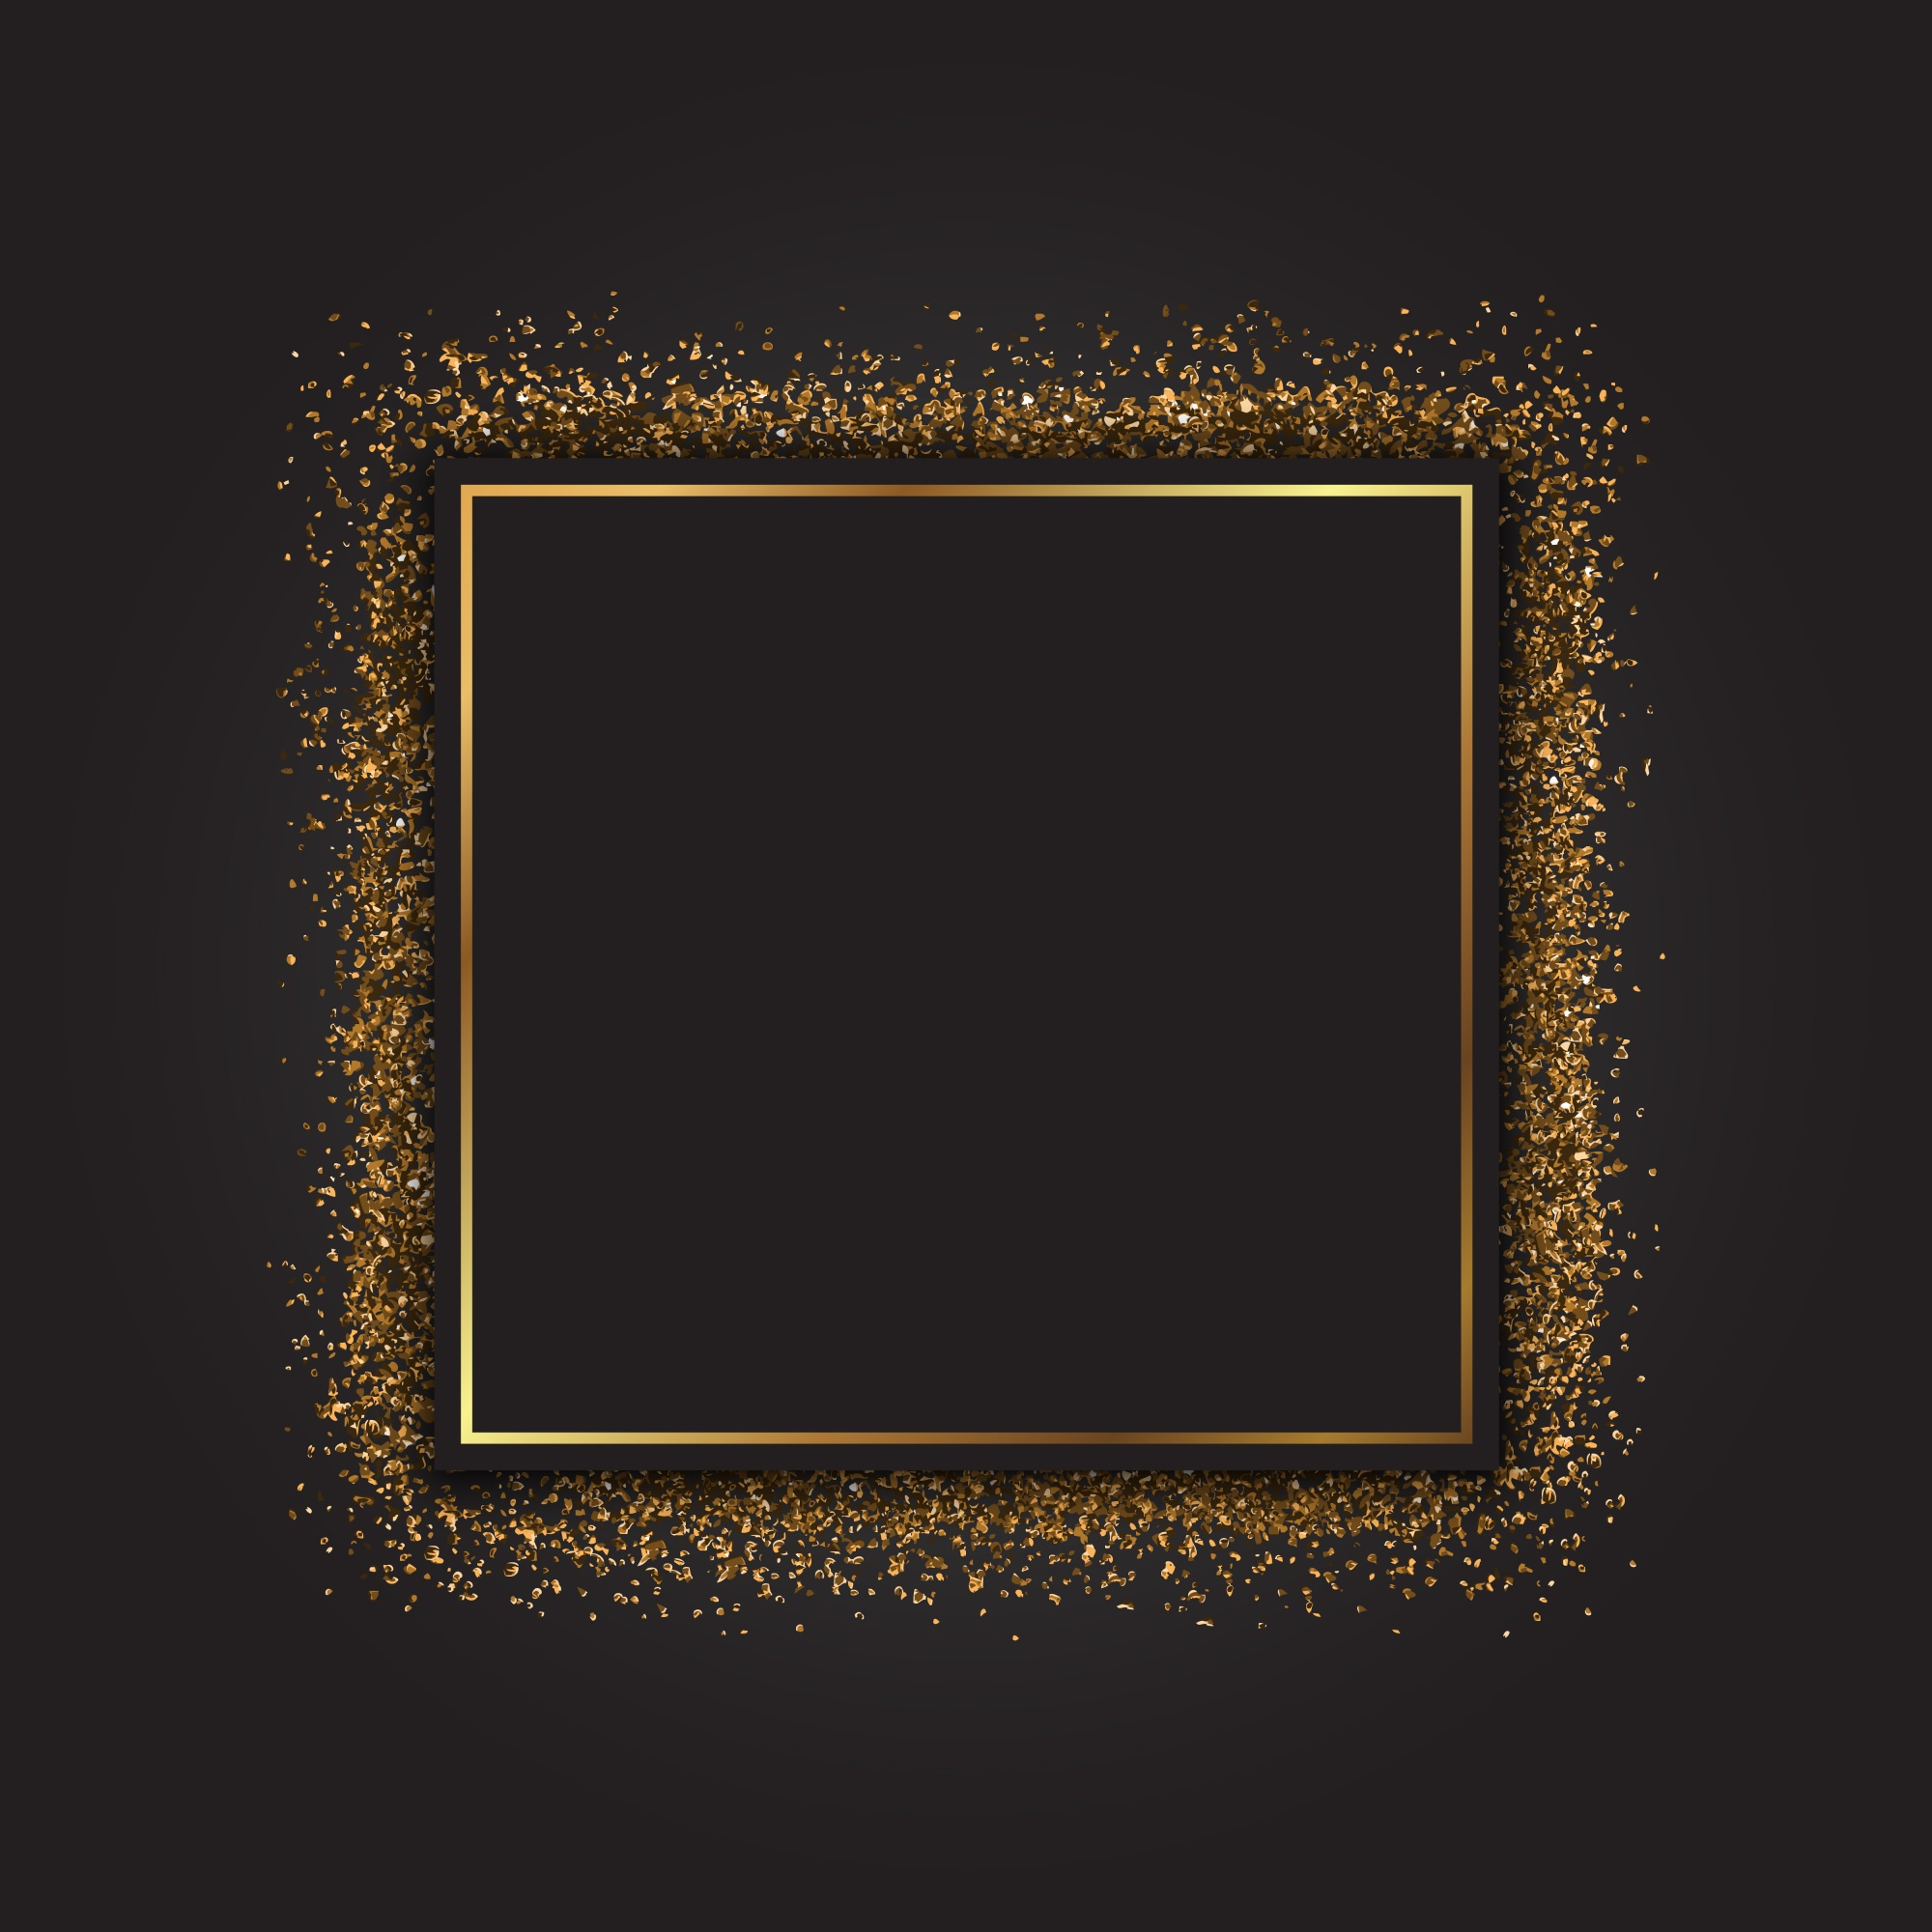 Decorative frame with a gold glitter effect